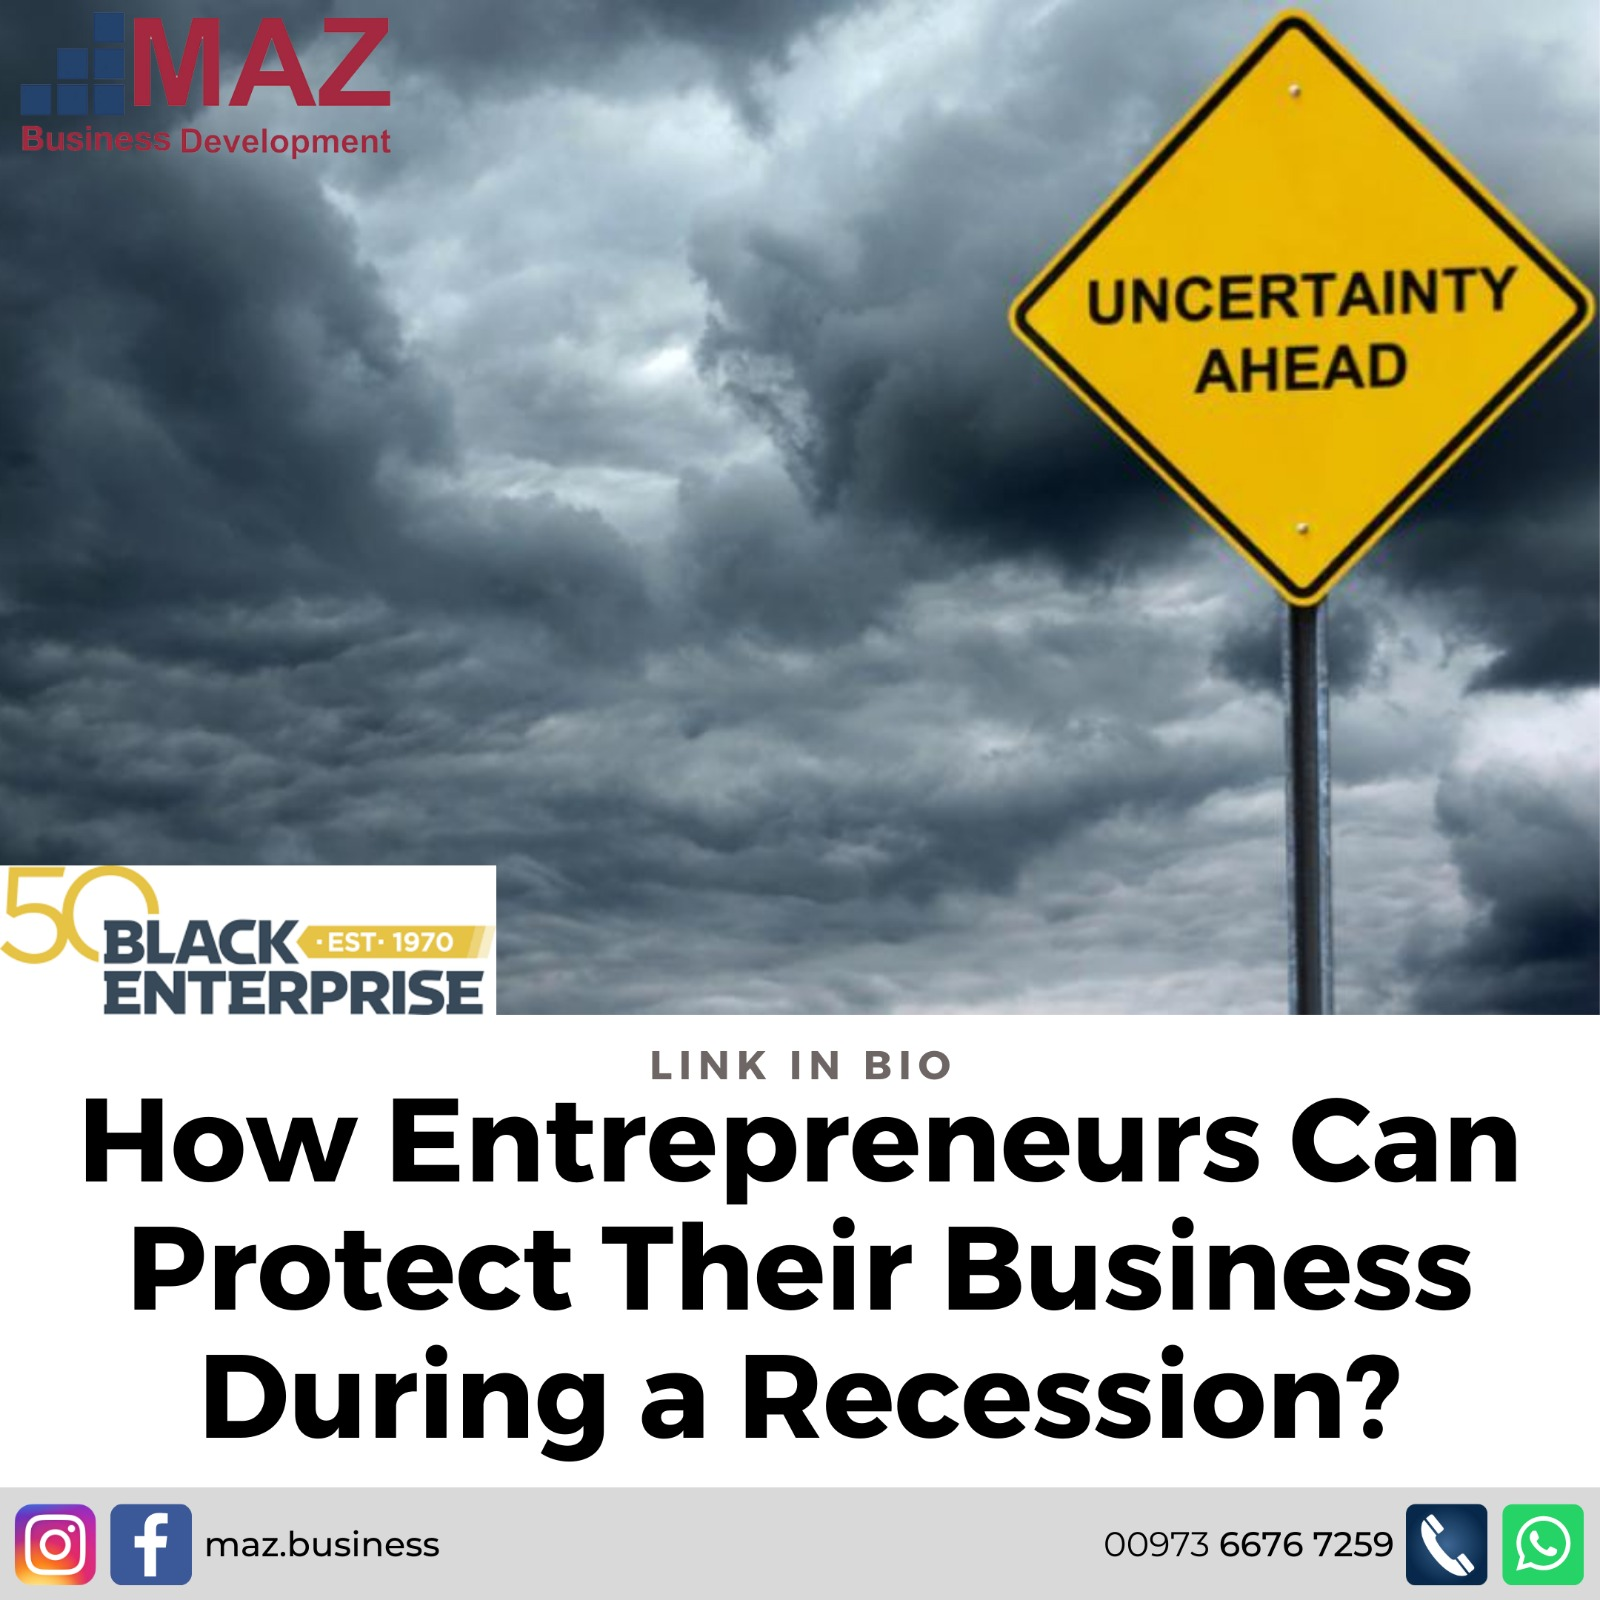 How Entrepreneurs Can Protect Their Business During a Recession?